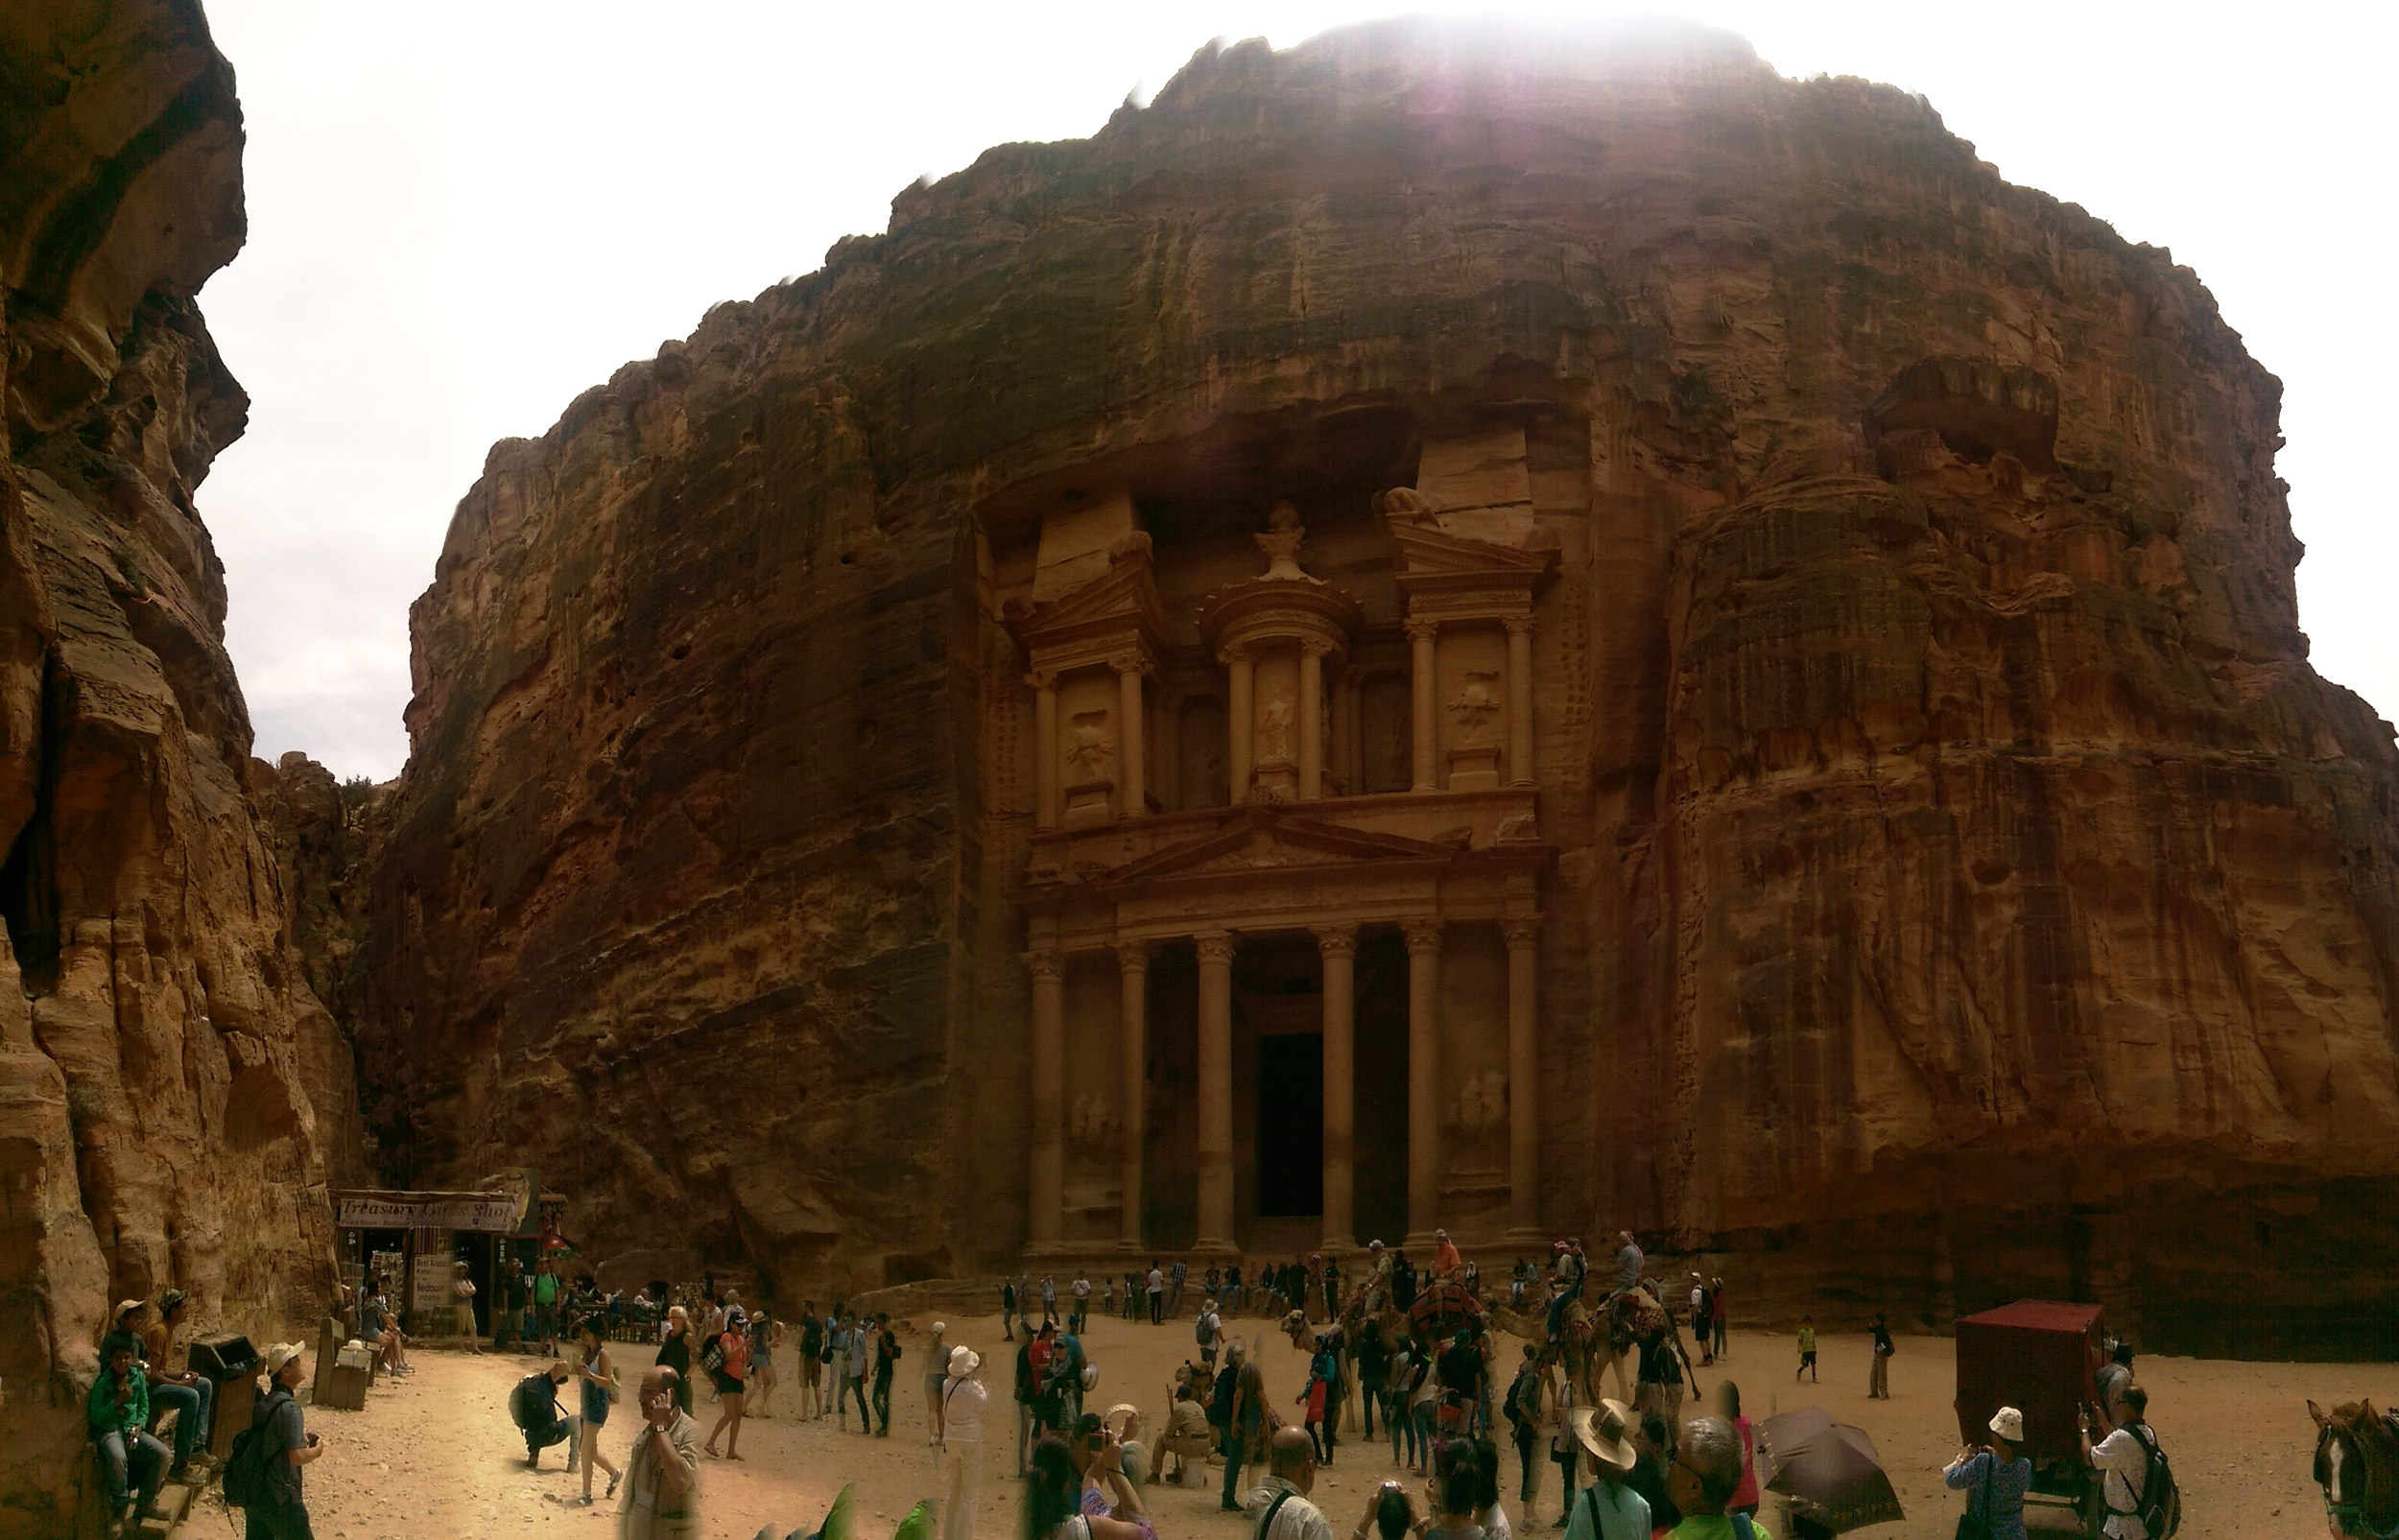 If you can get past the fact that this photo is a flawed attempt at a panoramic, you might notice Al-Khazneh, the Treasury, Petra's most famous façade